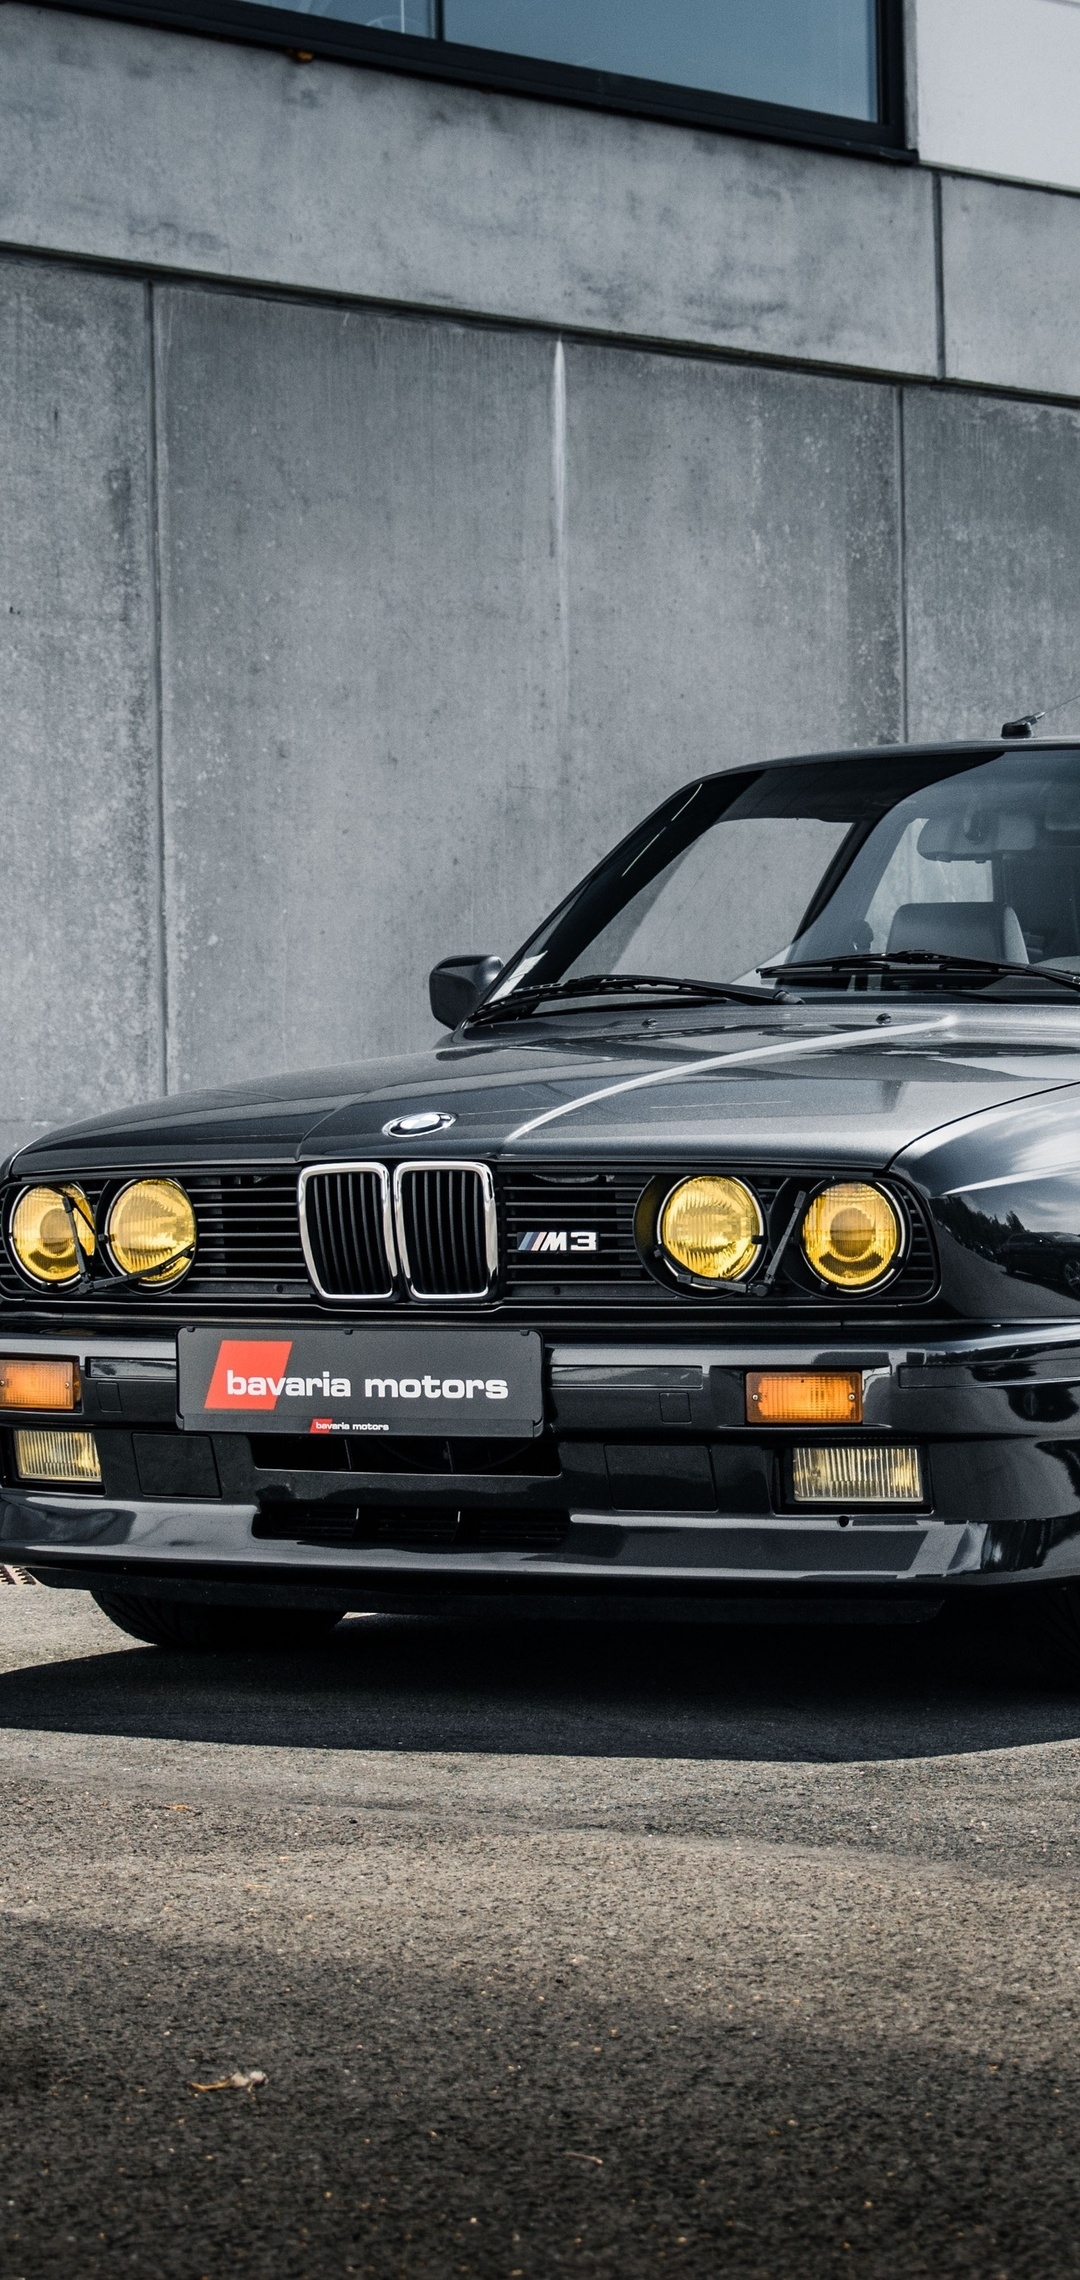 1080x2280 Bmw M3 E30 3 Series Black Coupe One Plus 6 Huawei P20 Honor View 10 Vivo Y85 Oppo F7 Xiaomi Mi A2 Hd 4k Wallpapers Images Backgrounds Photos And Pictures